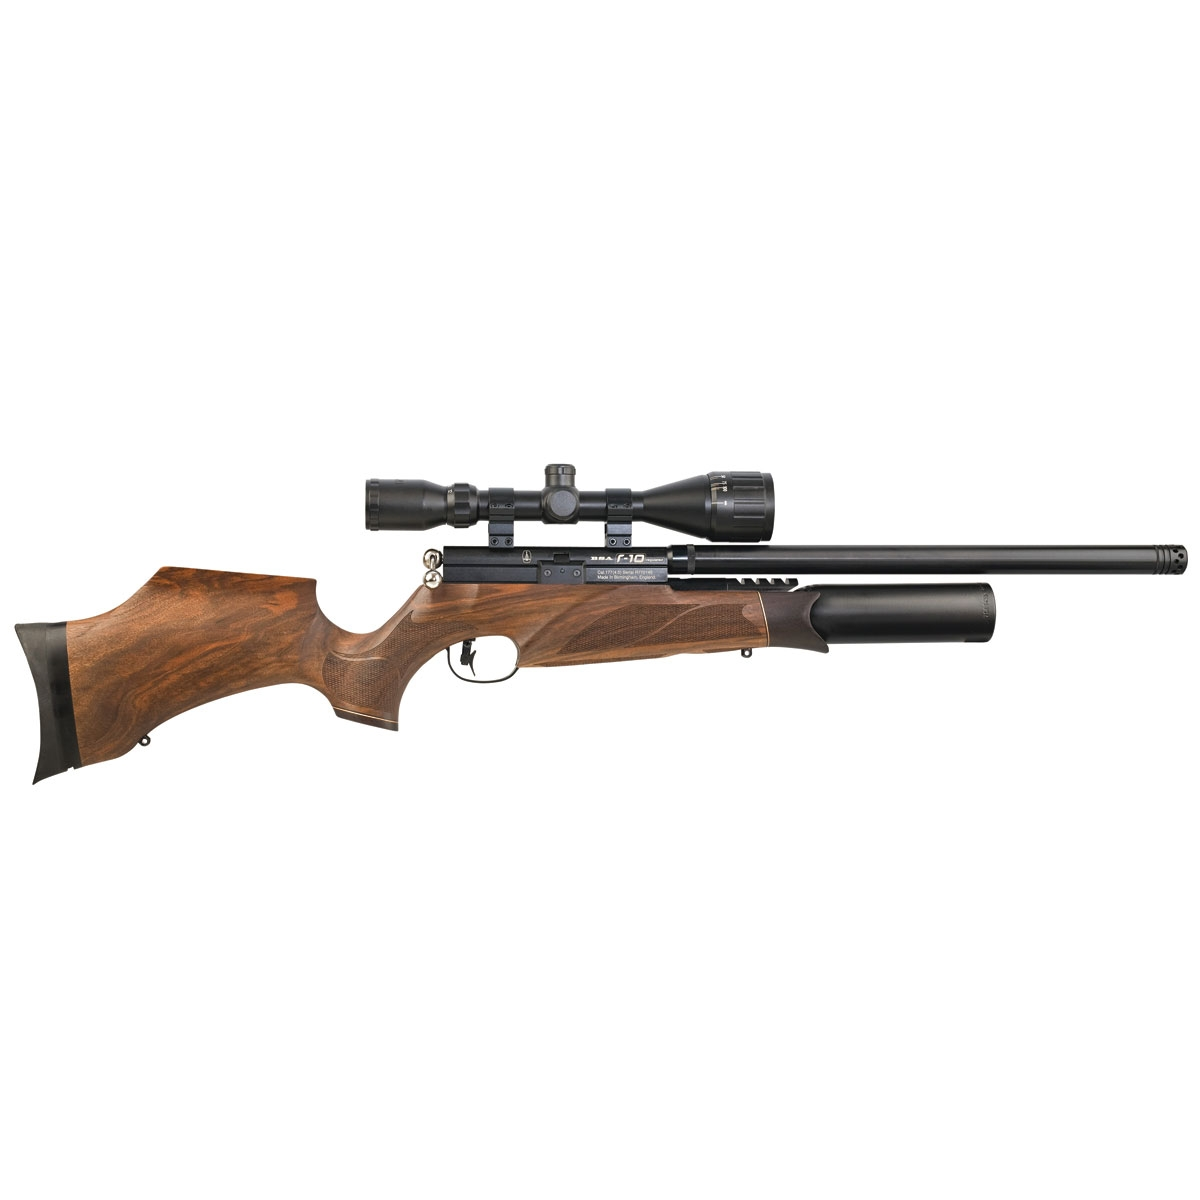 Air rifle deals uk